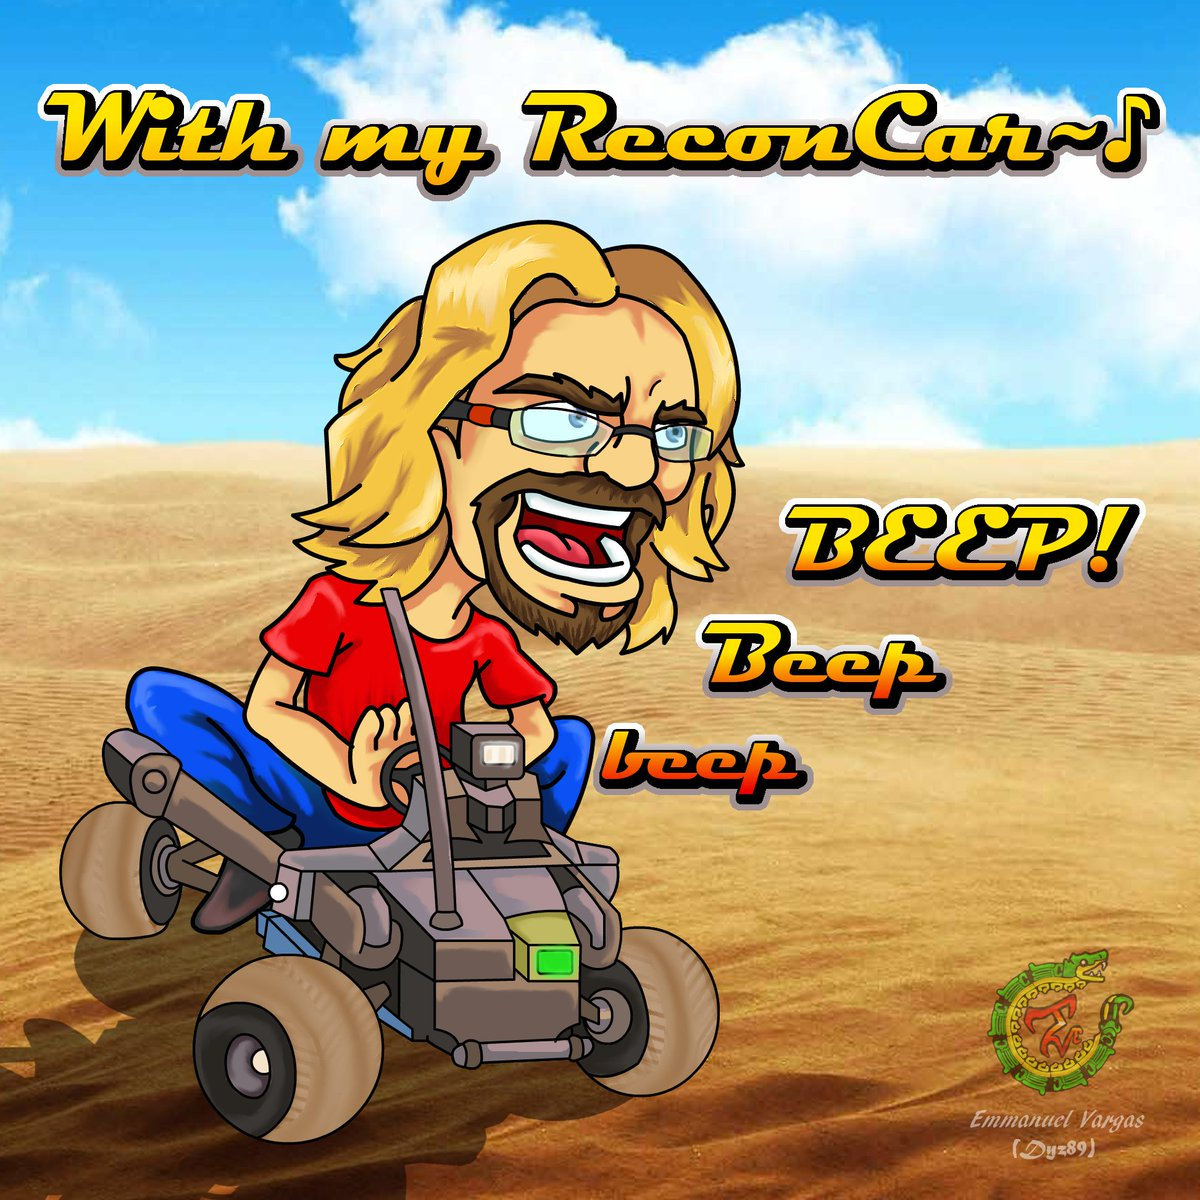 Aaaand finally done! im glad @maximilian_  is still playing Black Out to keep this relevant, still waiting on that Recon Car song remix to show up on youtube though! this is also a thank you for gifting me a Sub, thanks for the inspiration dood! shine on!